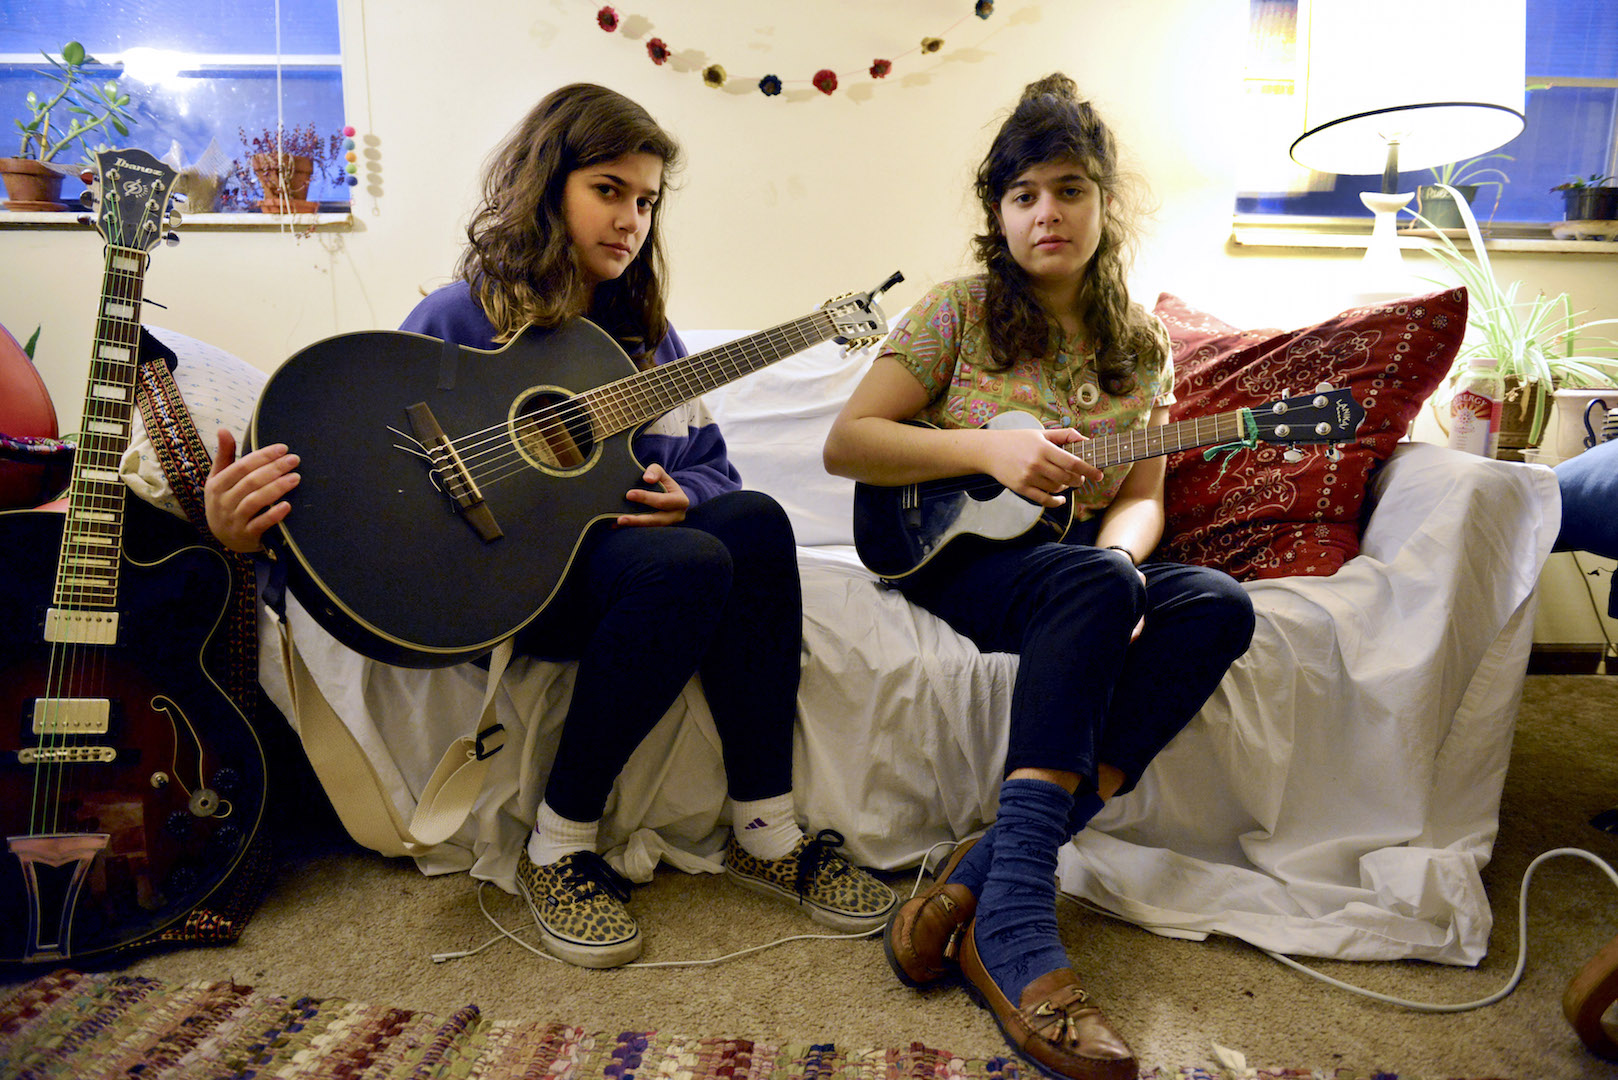 Hannah (left) and Delia Rainey (right) in their home during a Dubb Nubb band practice in Columbia, Mo. Friday, Jan. 30, 2015.